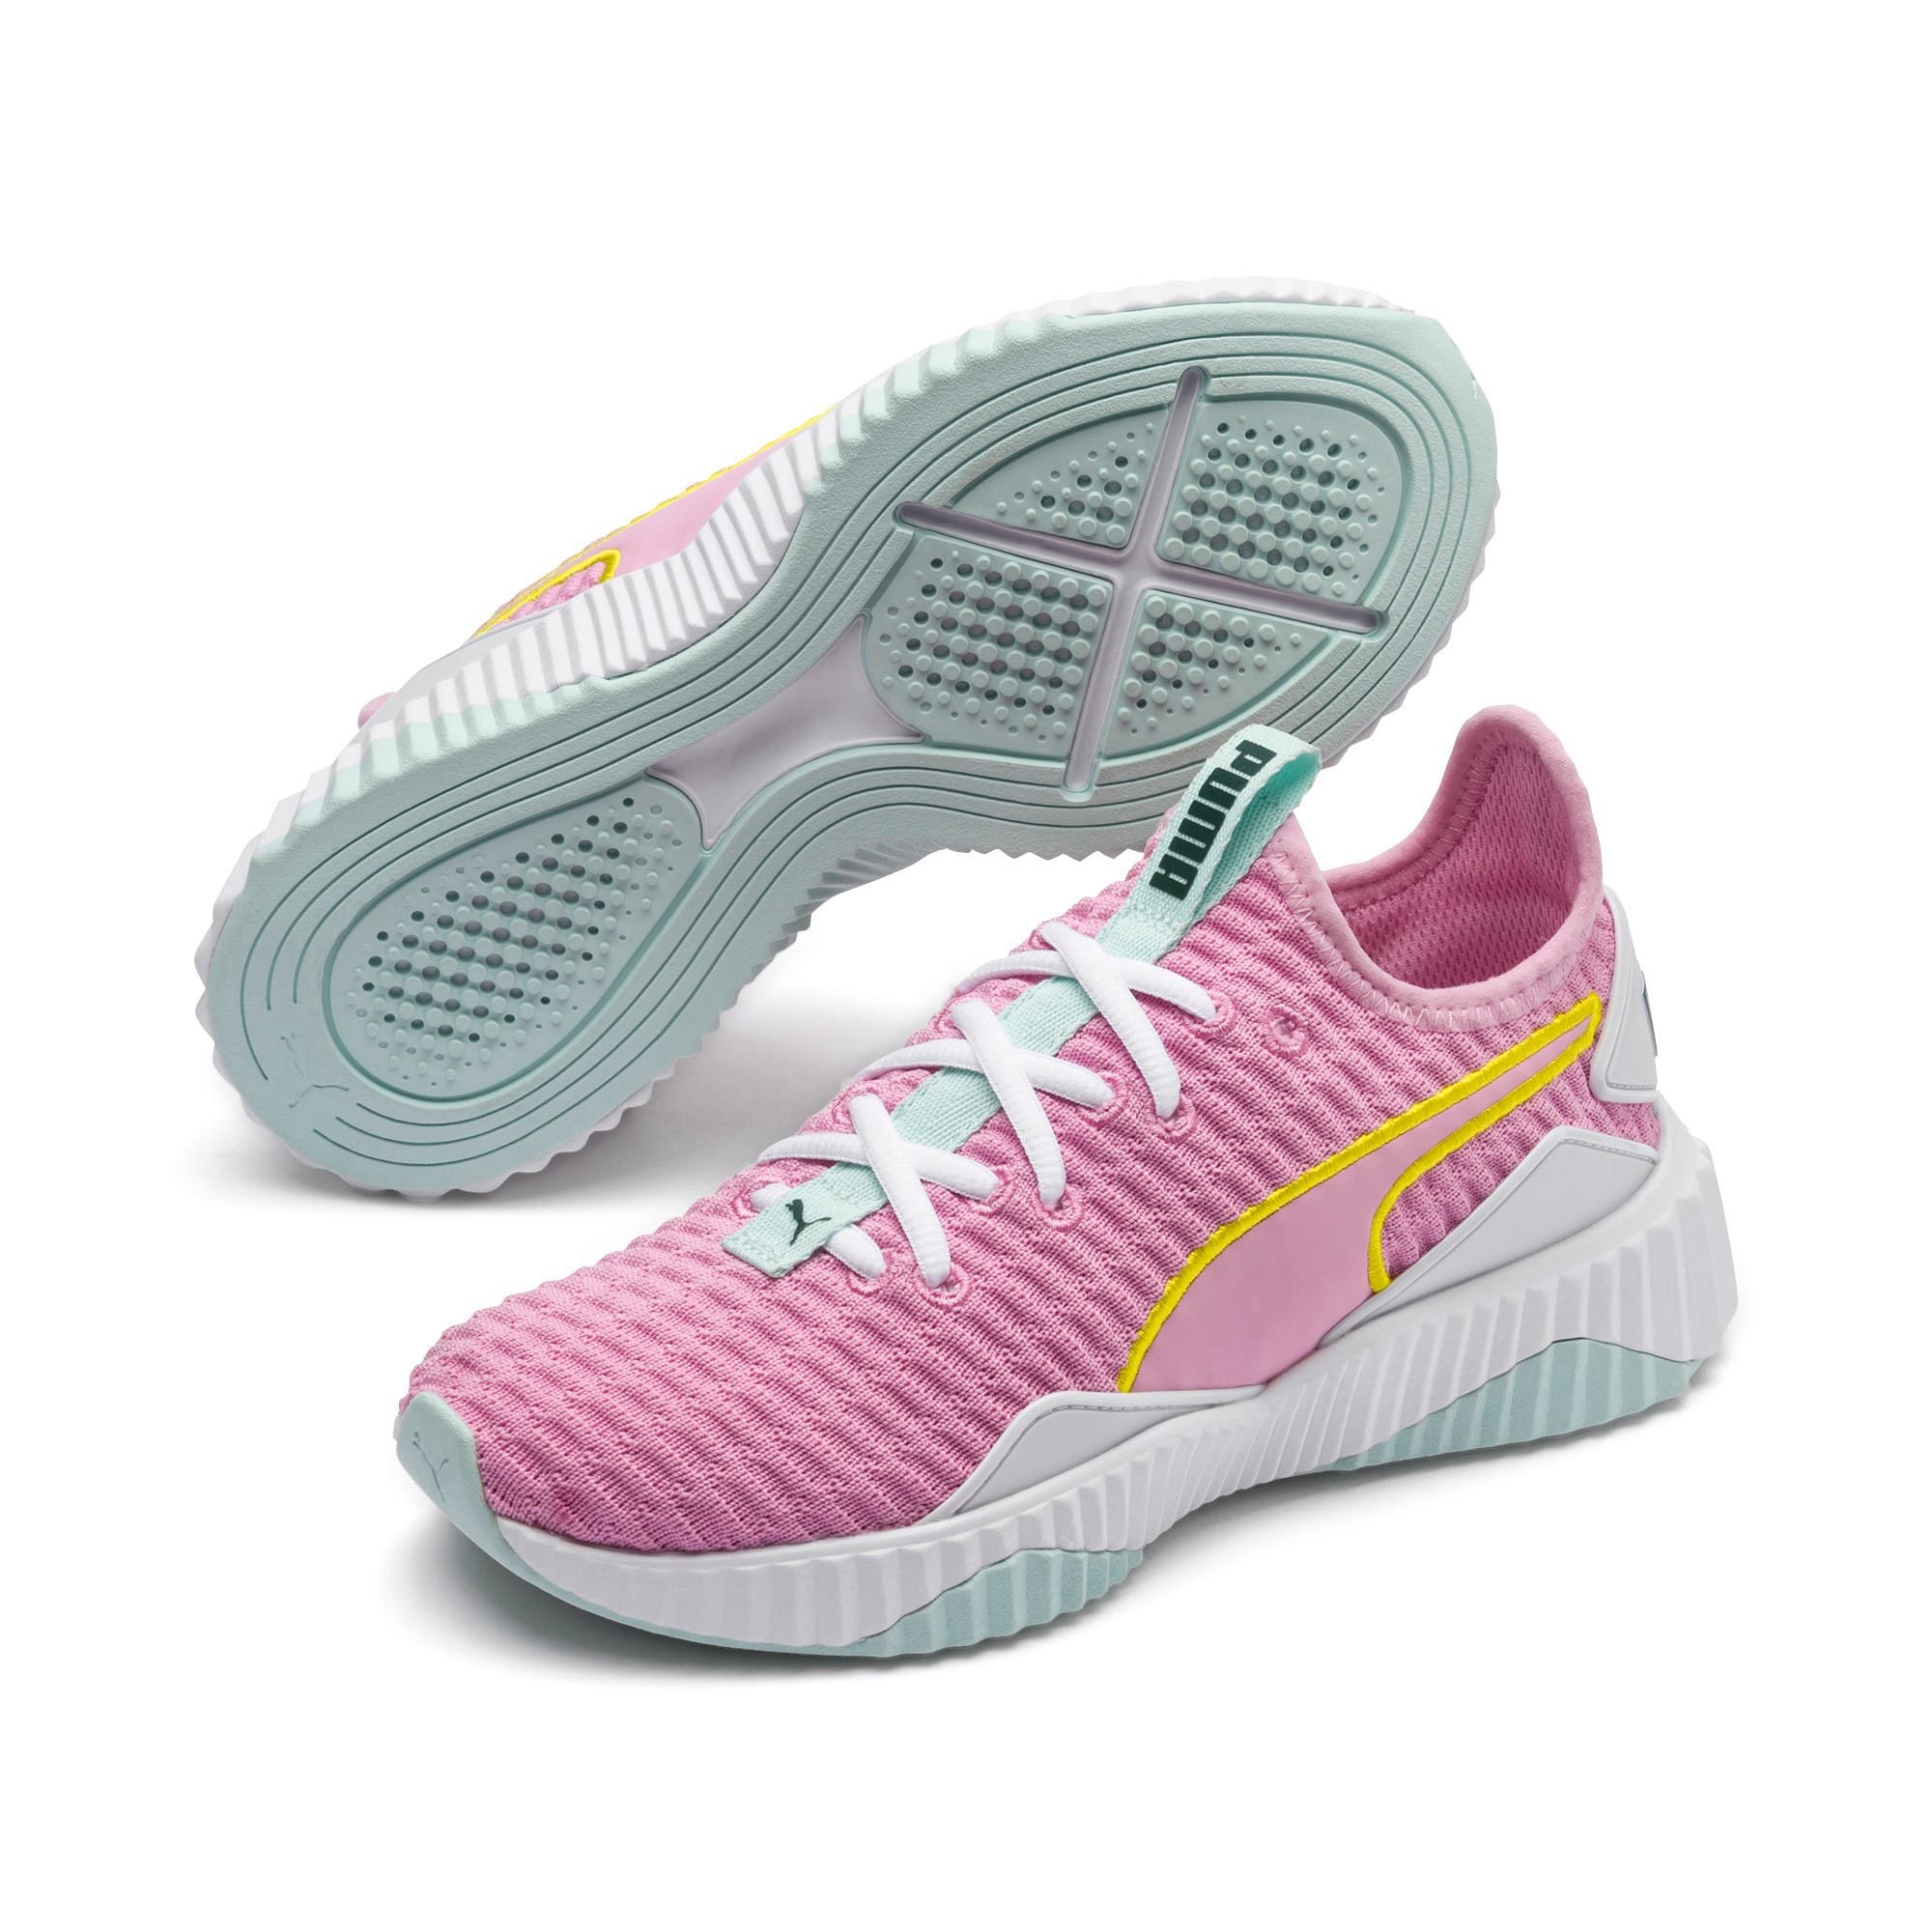 Thumbnail 2 of Defy sneakers voor meisjes, Pale Pink-White-Fair Aqua, medium